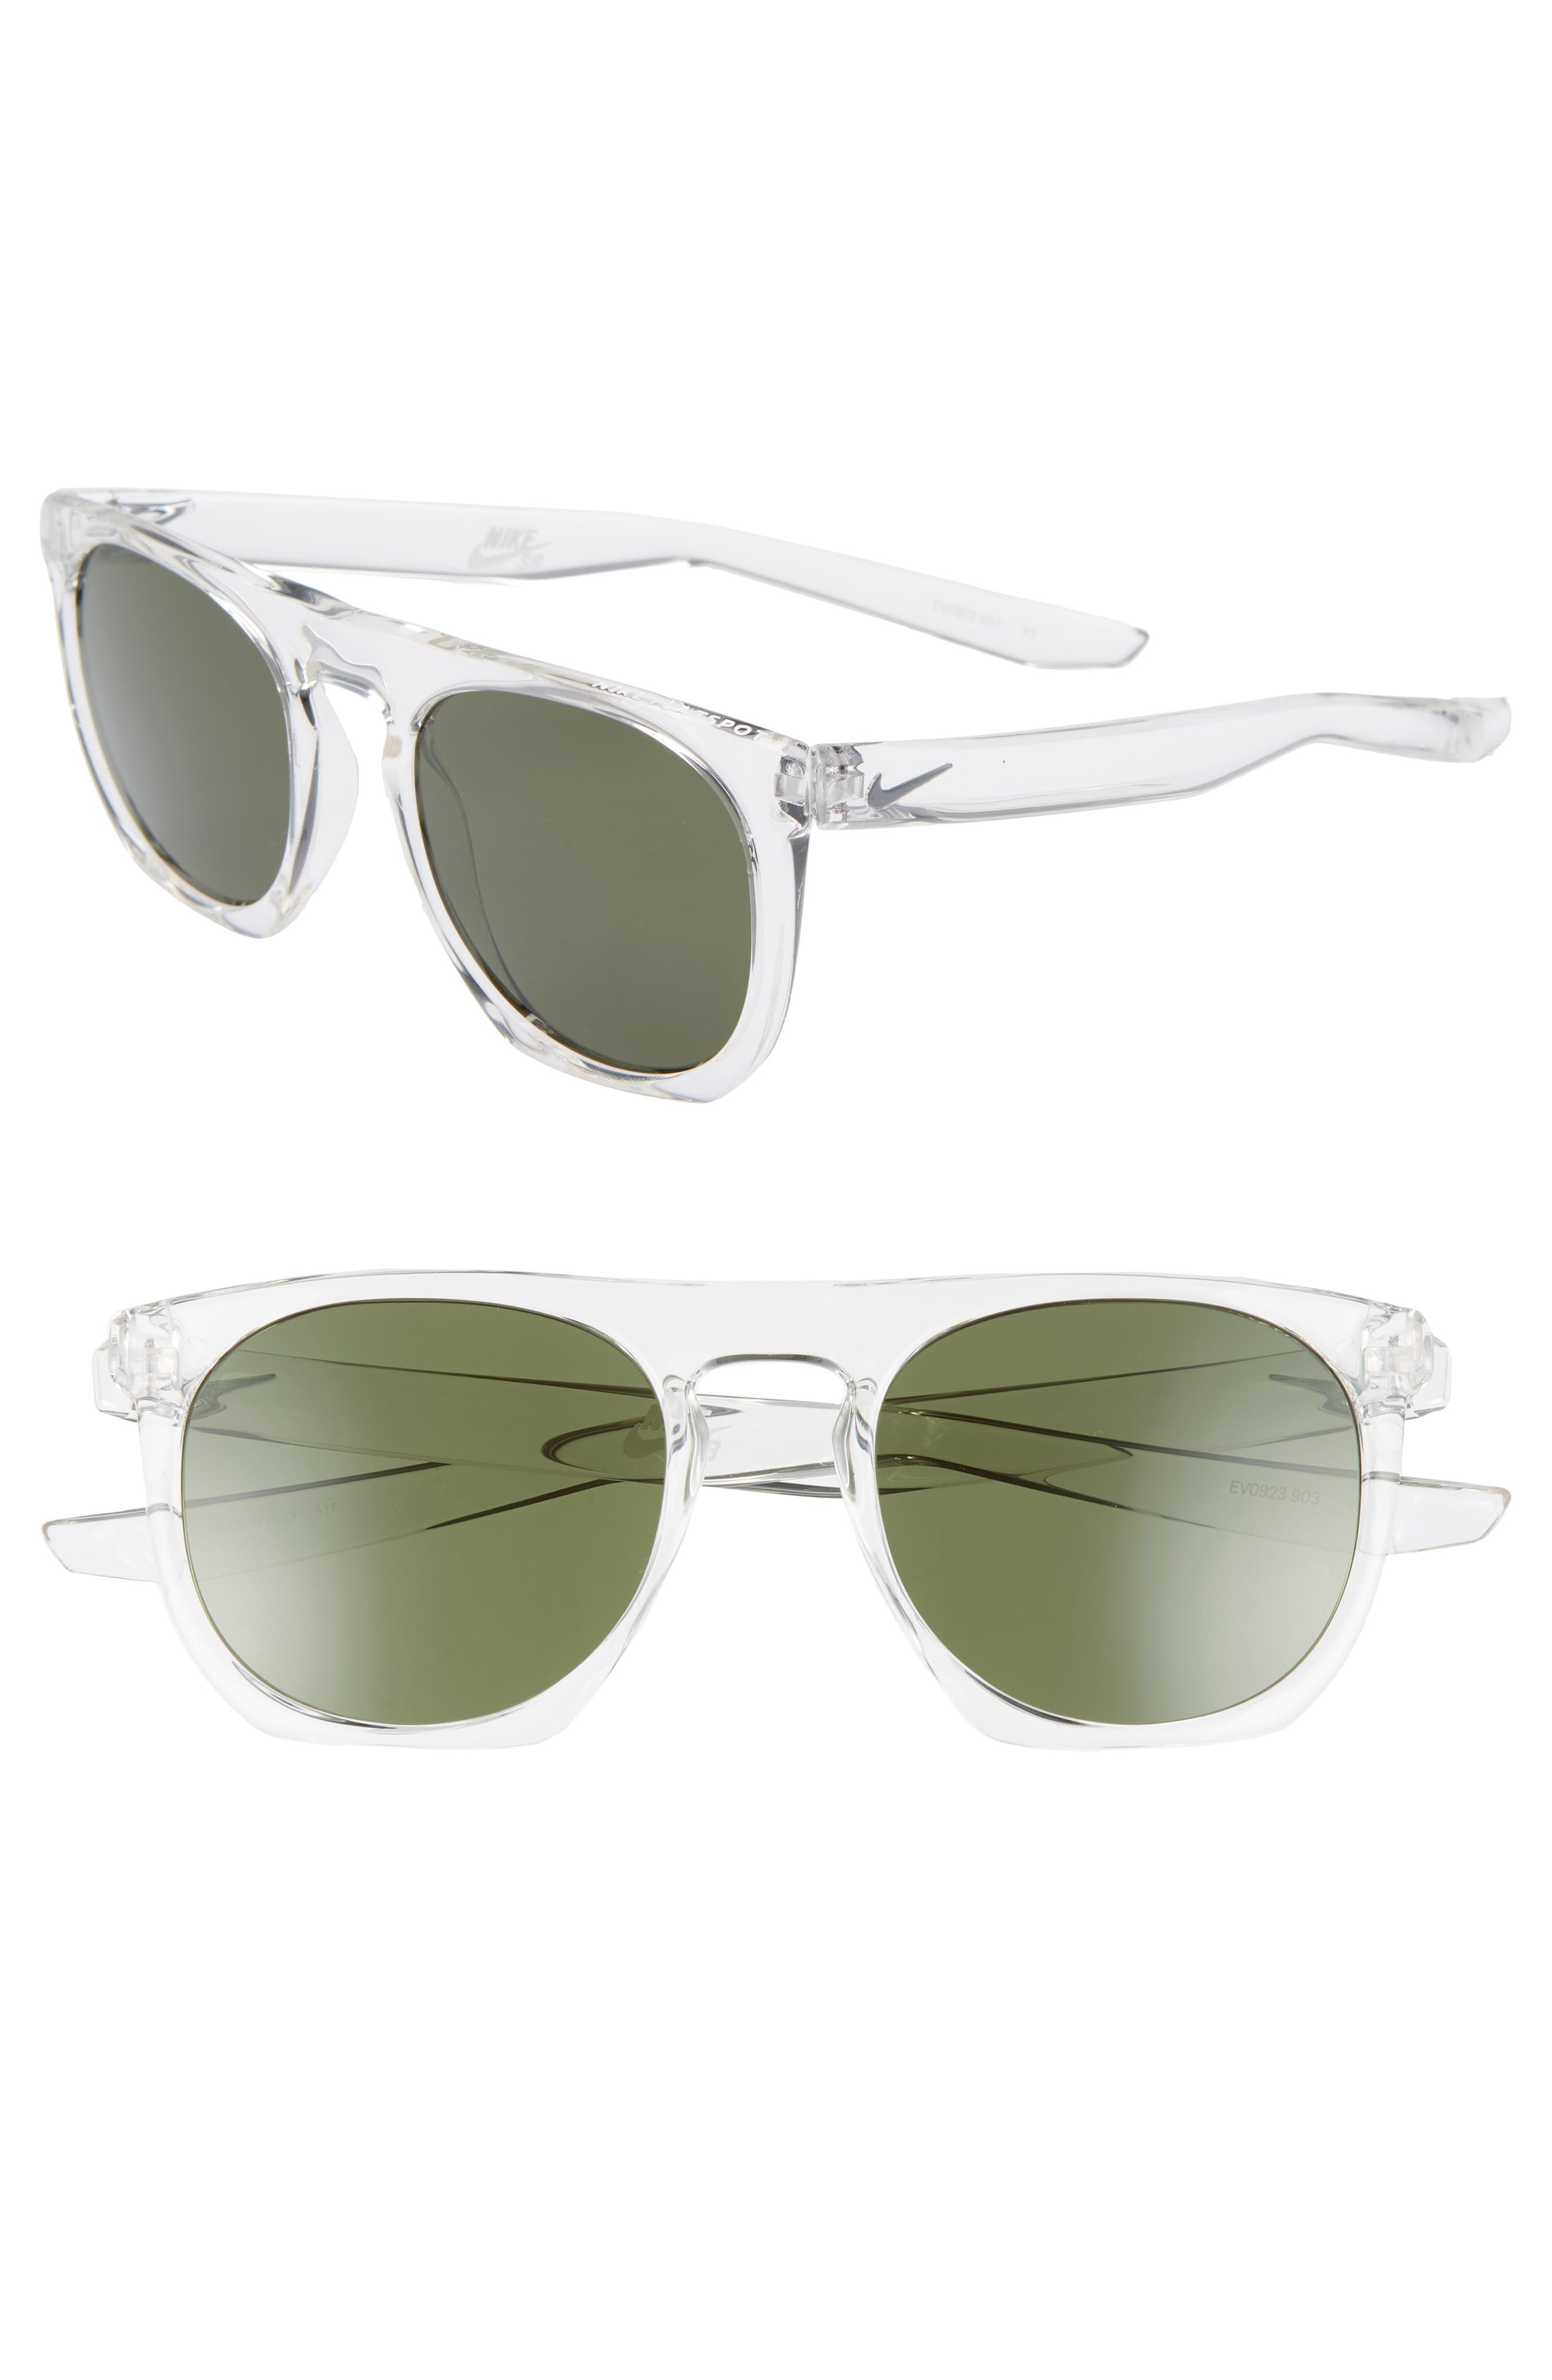 Nike Flatspot 52Mm Flat Top Sunglasses - Clear/ Green